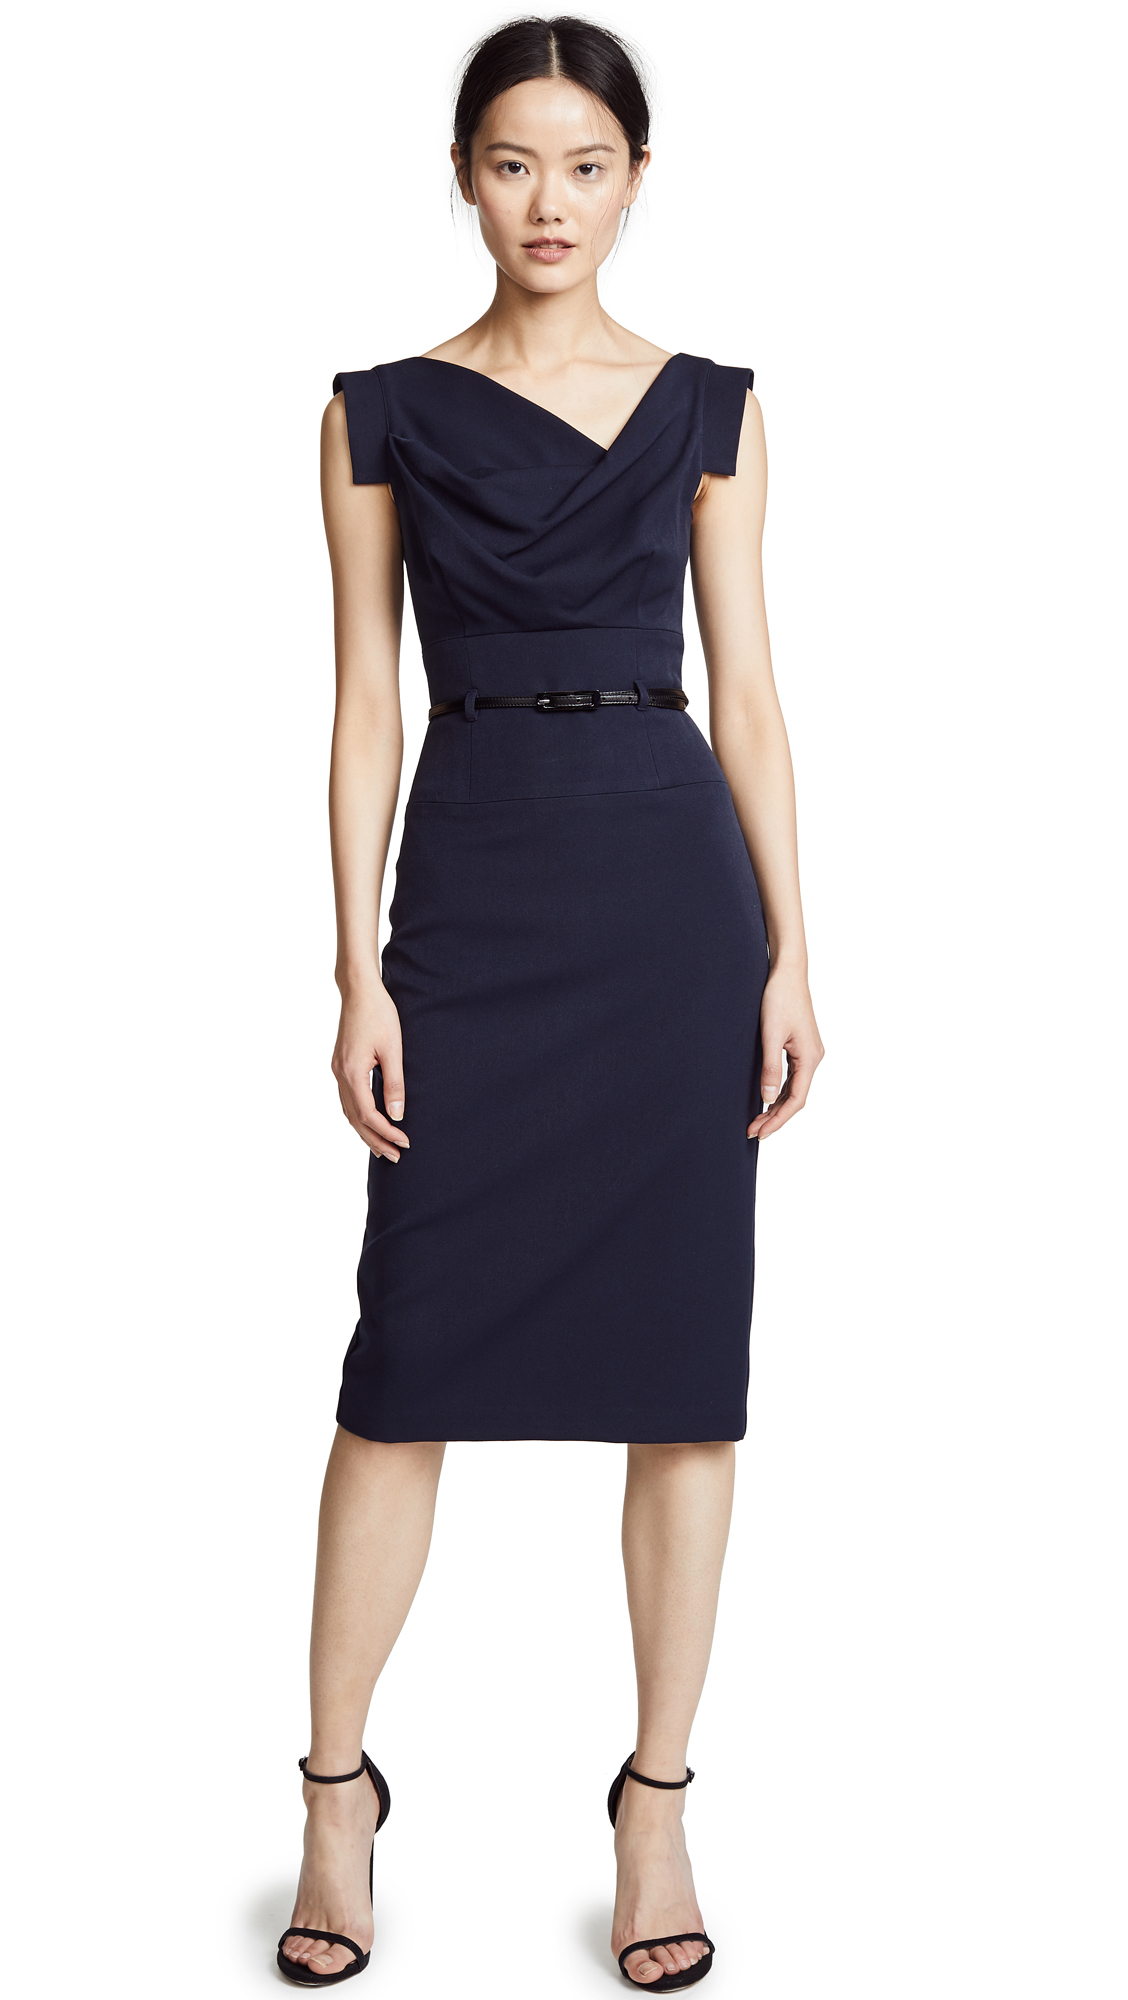 Black Halo Jackie O Belted Dress - Eclipse